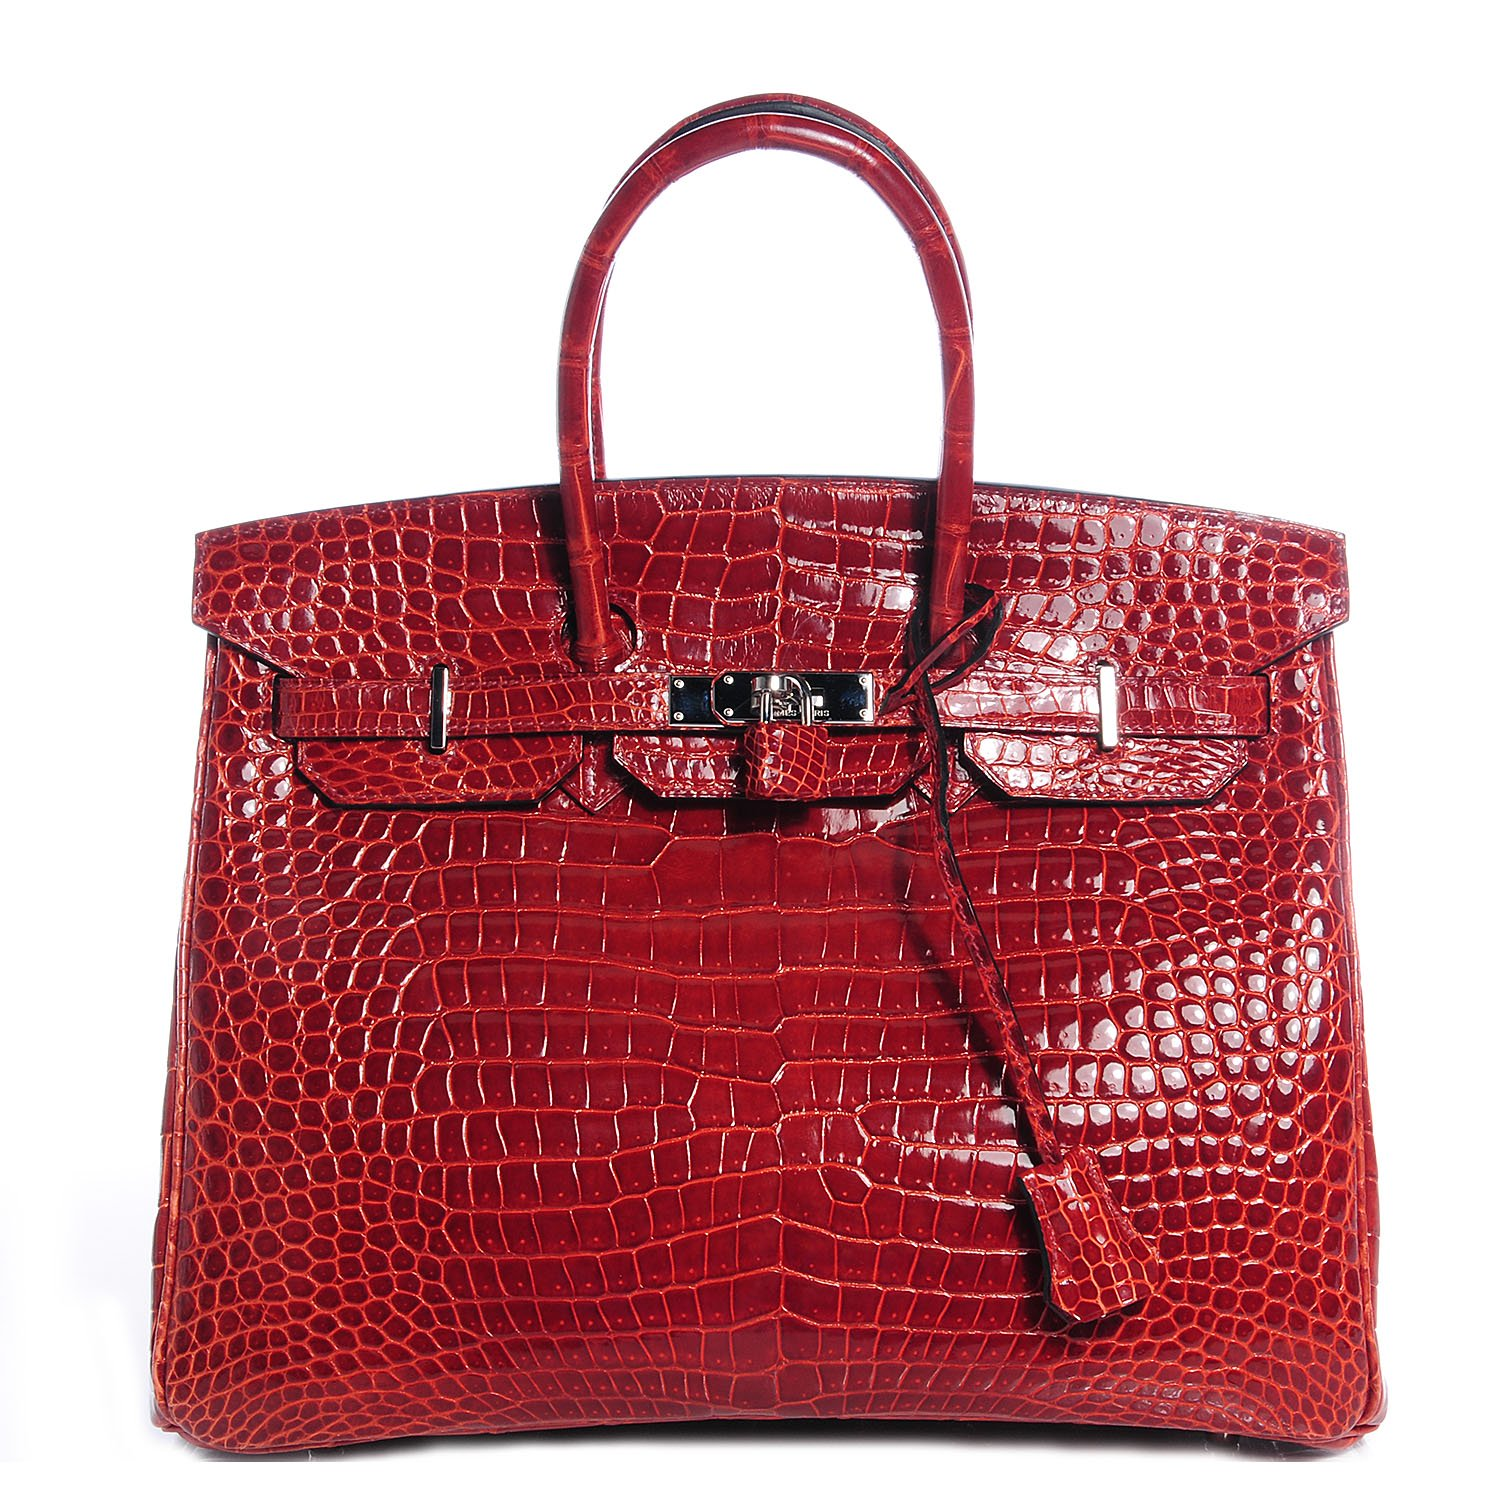 54892935eef The record for most expensive Hermès Kelly bag is held by the Hermès 32cm  Matte Geranium Porosus Crocodile   Black Togo Leather Sellier Kelly Bag  with Feet.